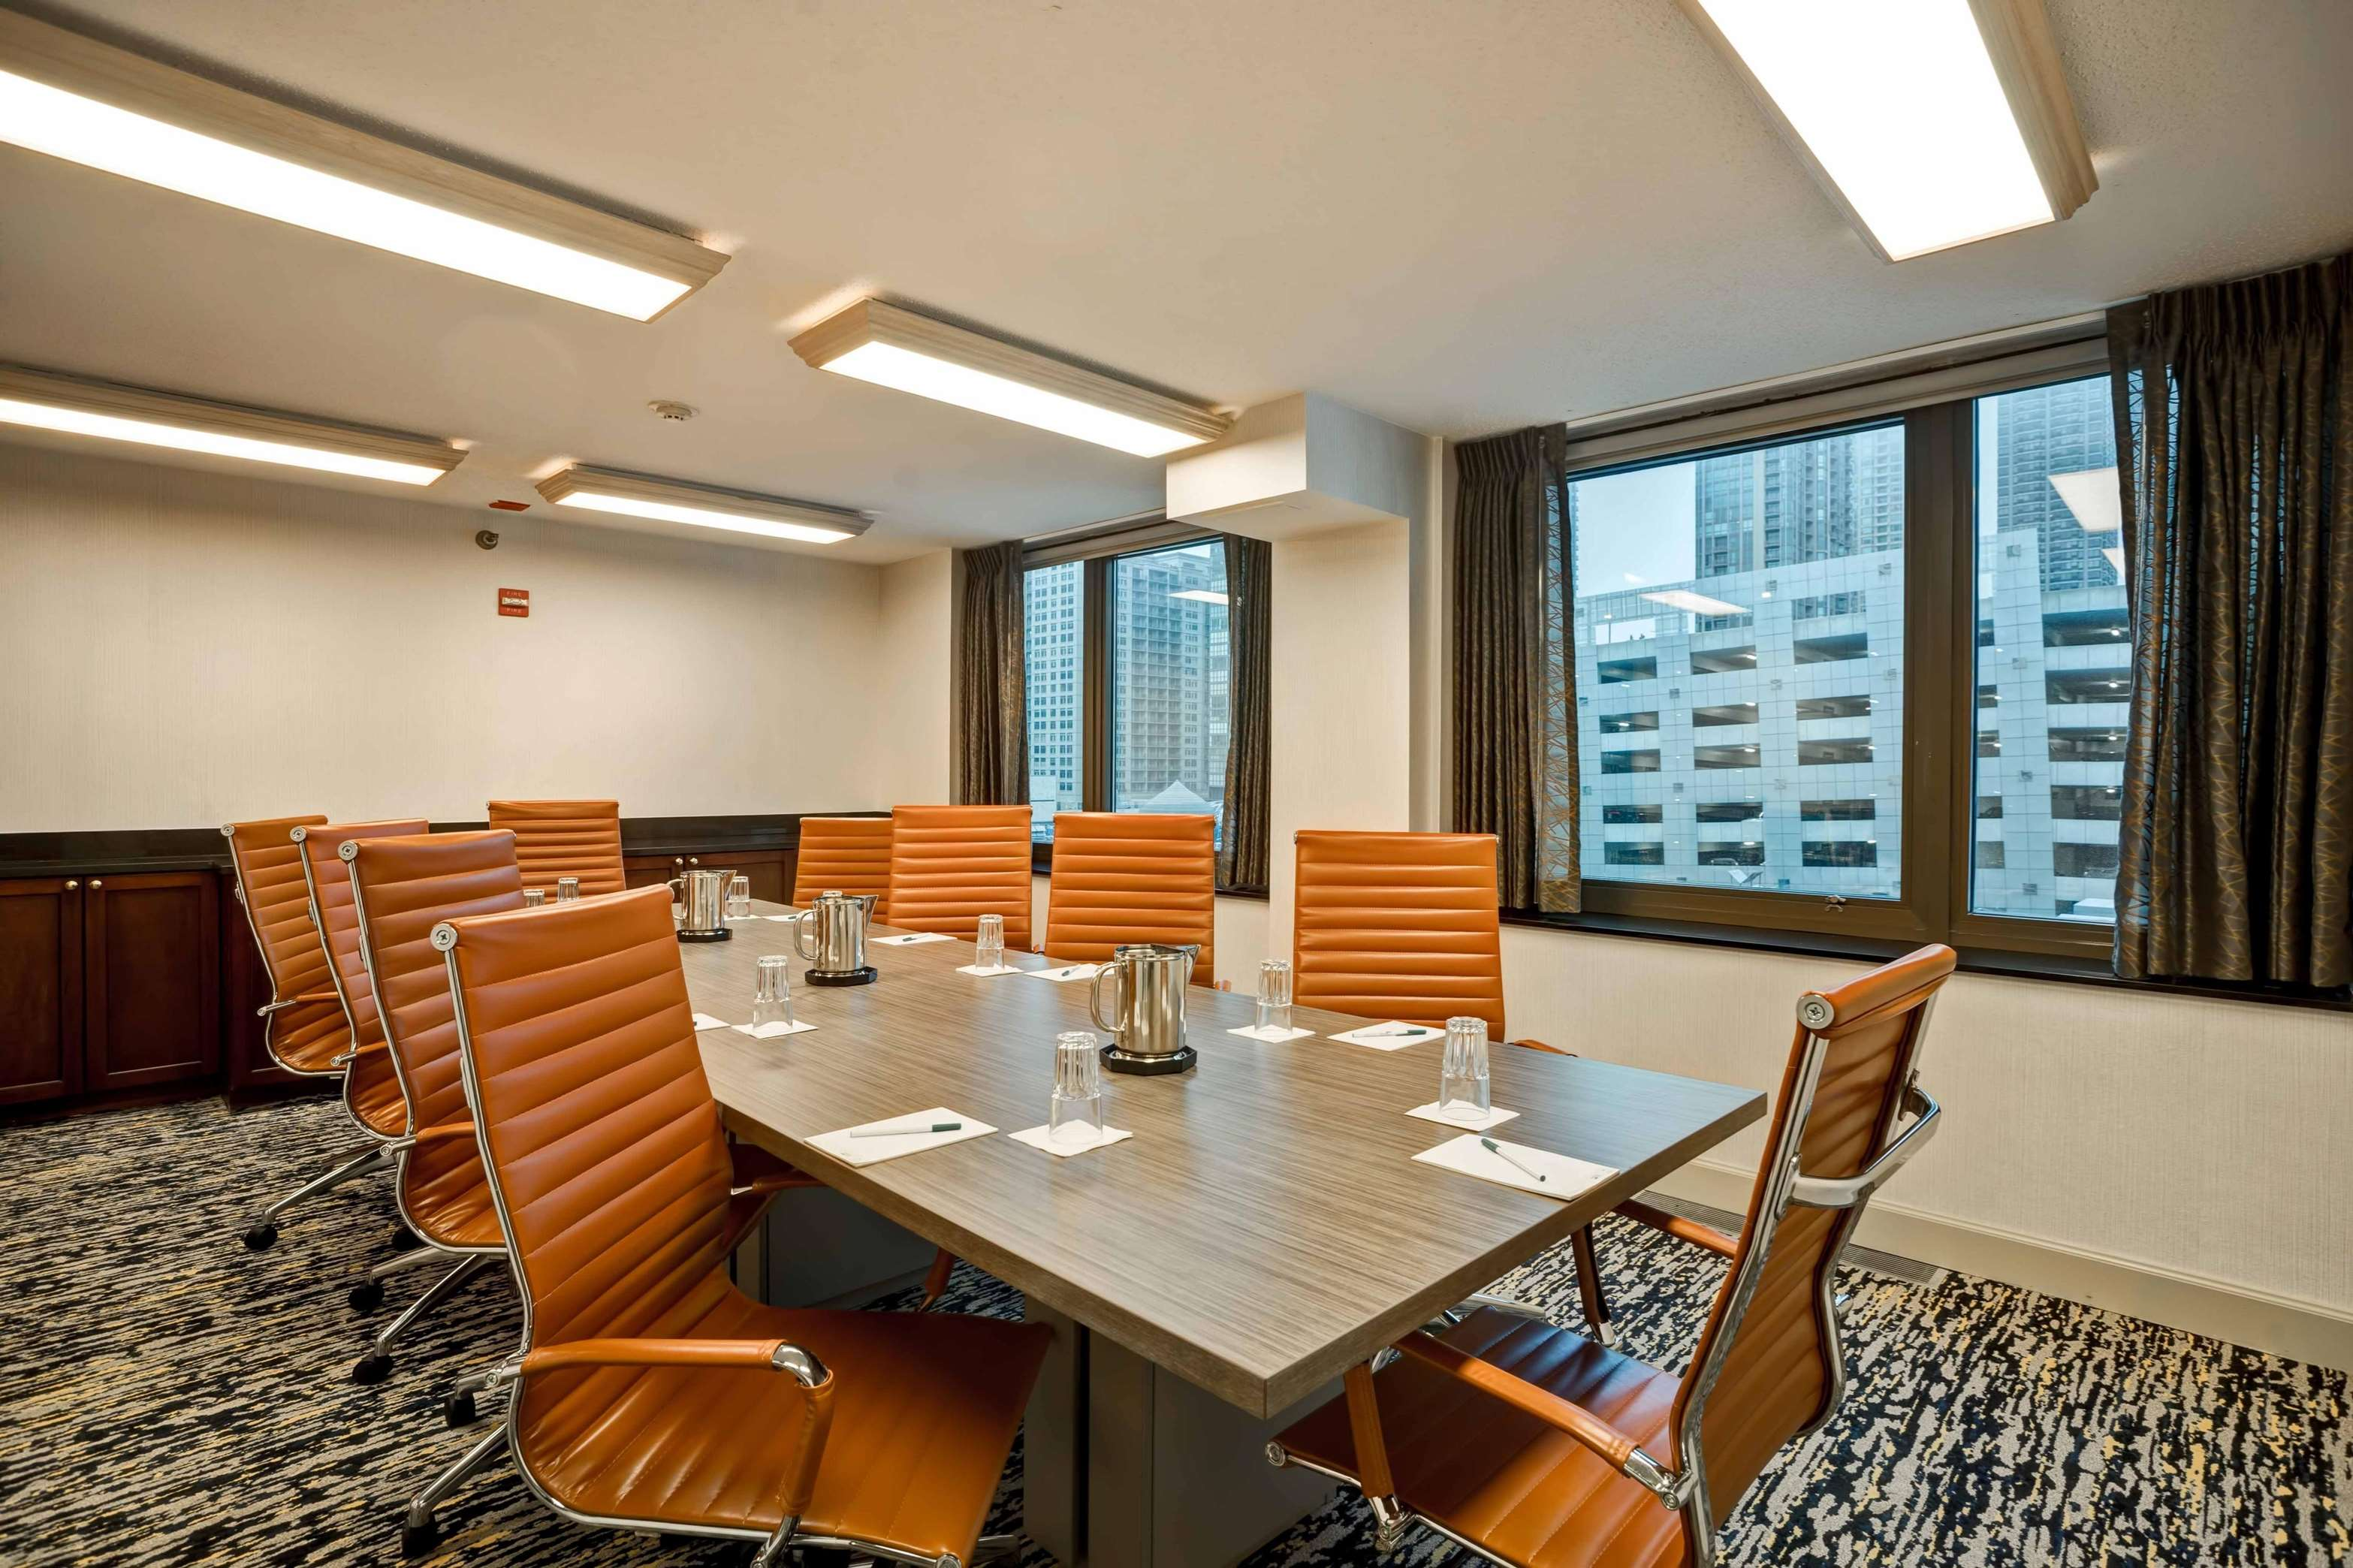 Homewood Suites by Hilton Chicago-Downtown image 31